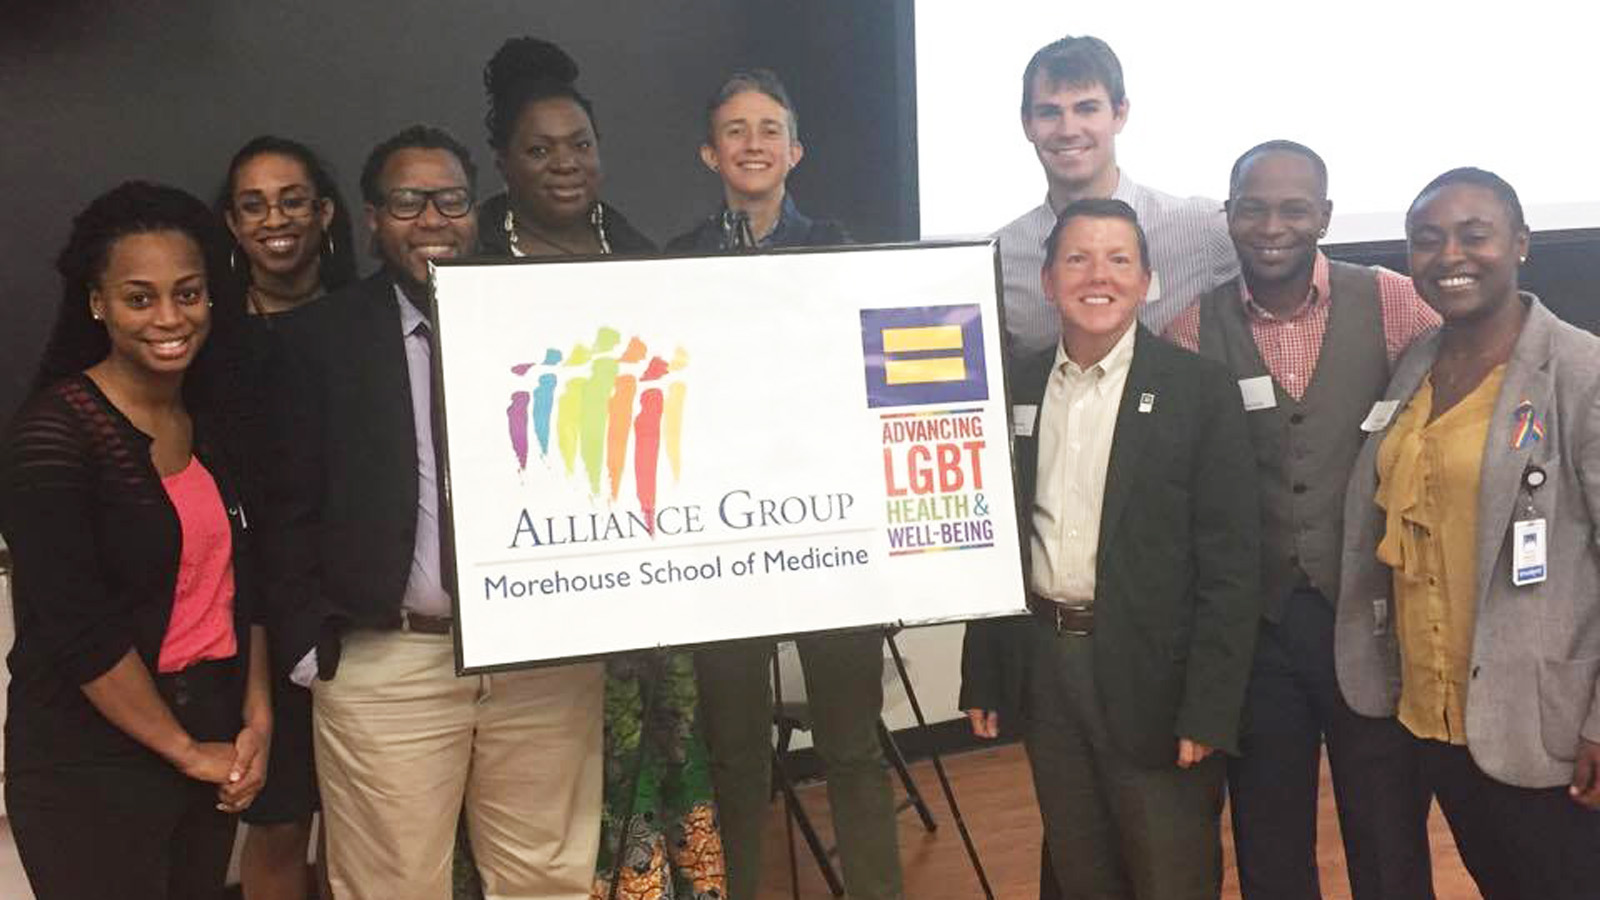 Training Tomorrow's Physicians About Transgender People and Their Health Needs